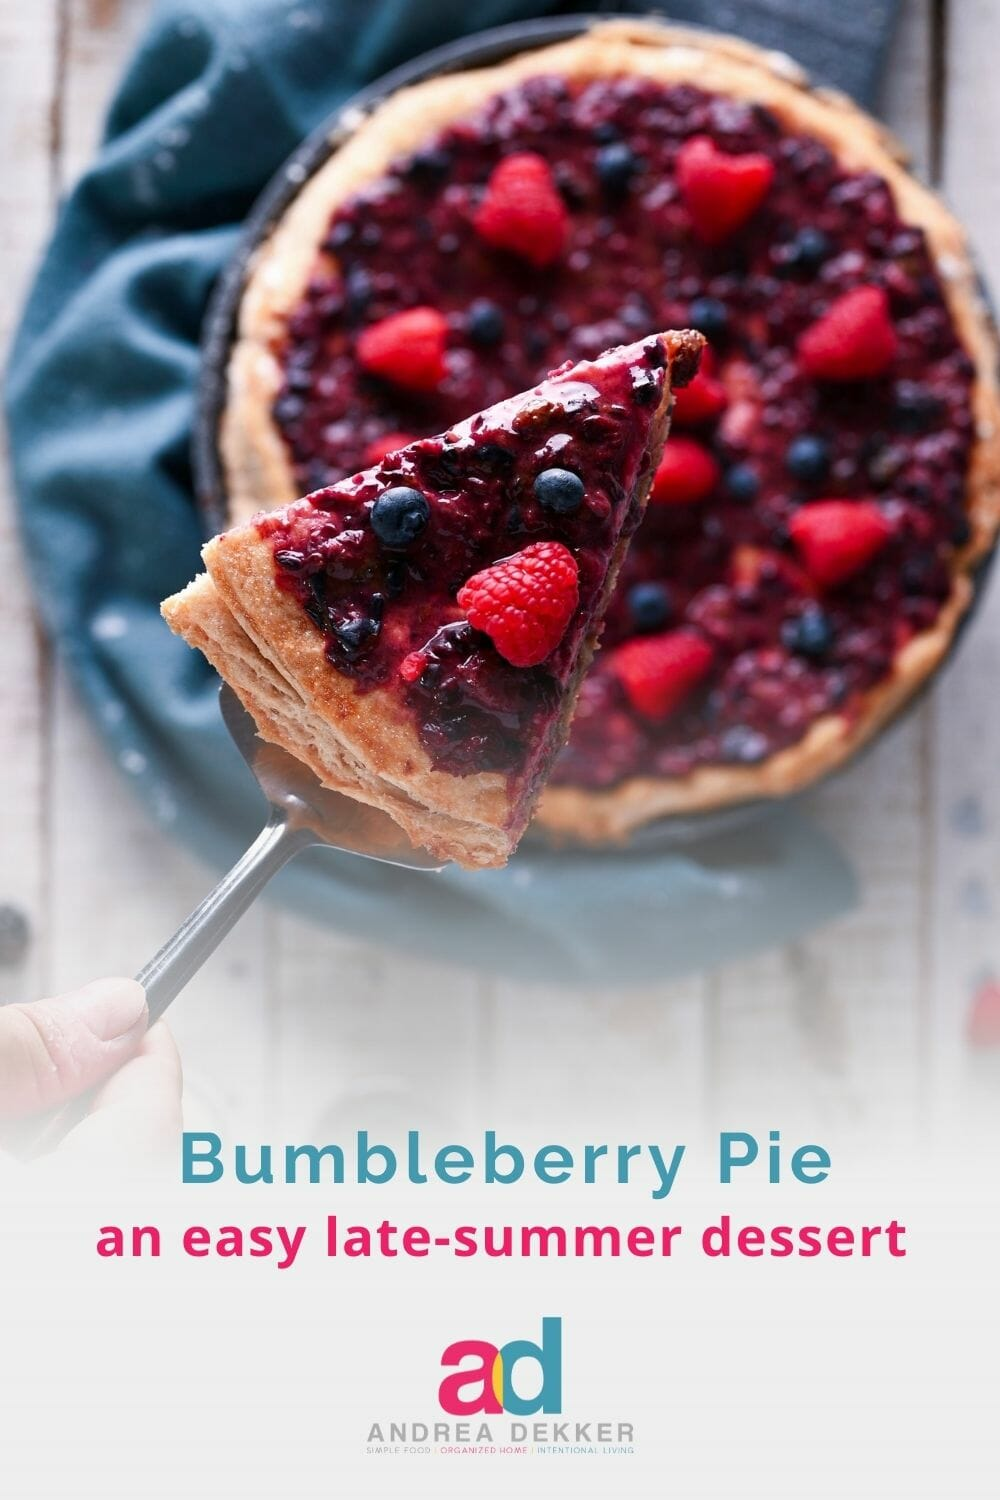 Bumbleberry Pie is a delicious way to enjoy all your favorite flavors of spring and summer in one easy dessert! via @andreadekker